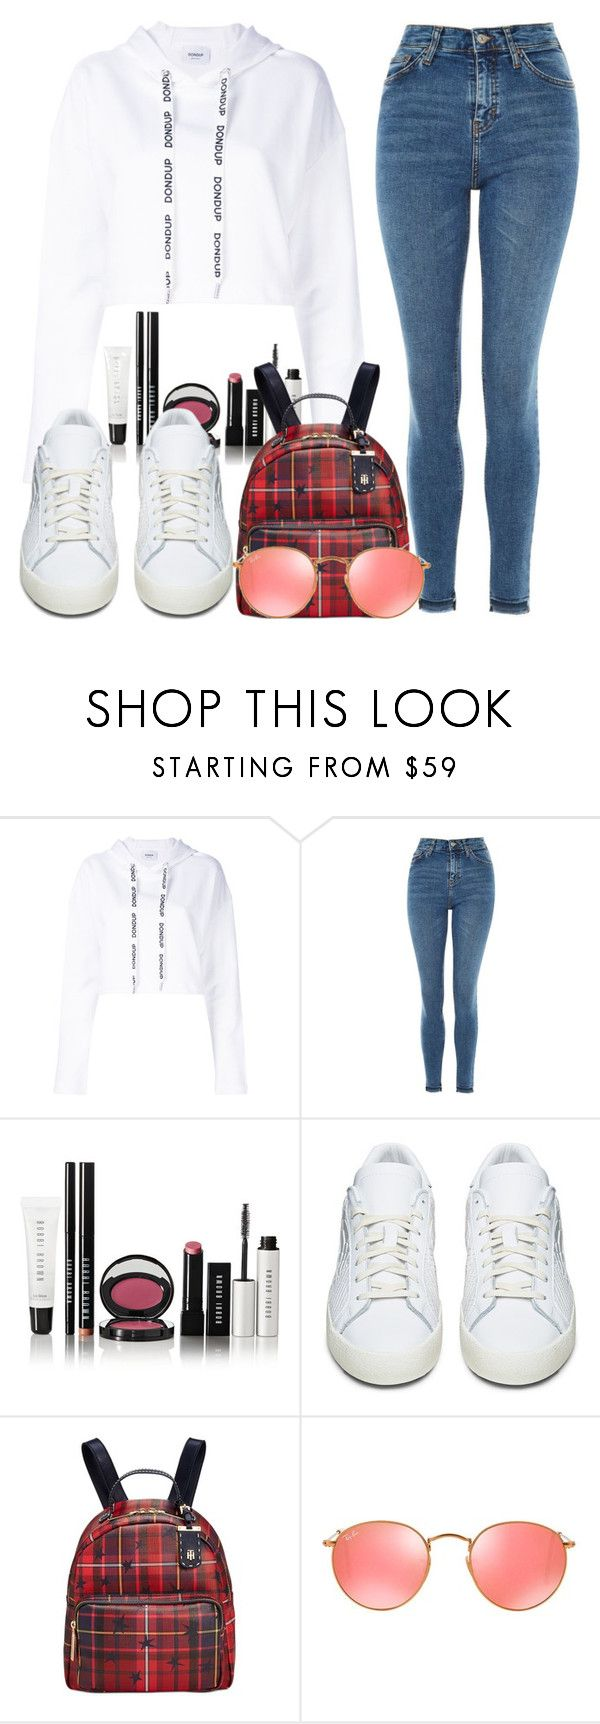 """""""samuel's concert."""" by inlovewith4idiots ❤ liked on Polyvore featuring Dondup, Topshop, Bobbi Brown Cosmetics, adidas Originals, Tommy Hilfiger and Ray-Ban"""